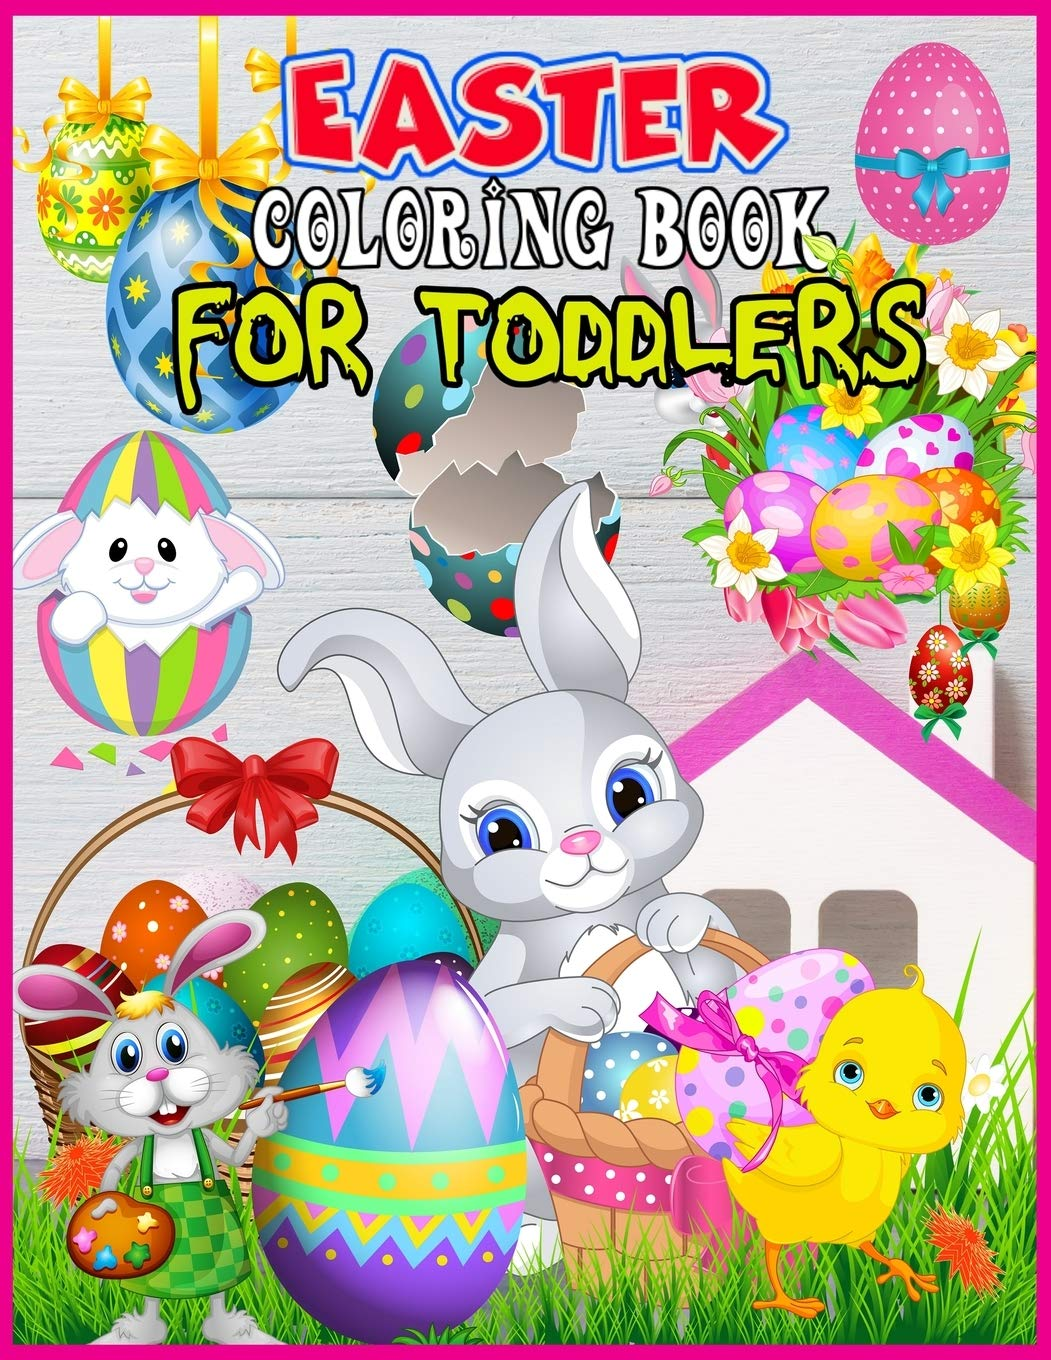 21+ Easter Coloring Pages - Free Printable Word, PDF, PNG, JPEG ... | 1360x1051